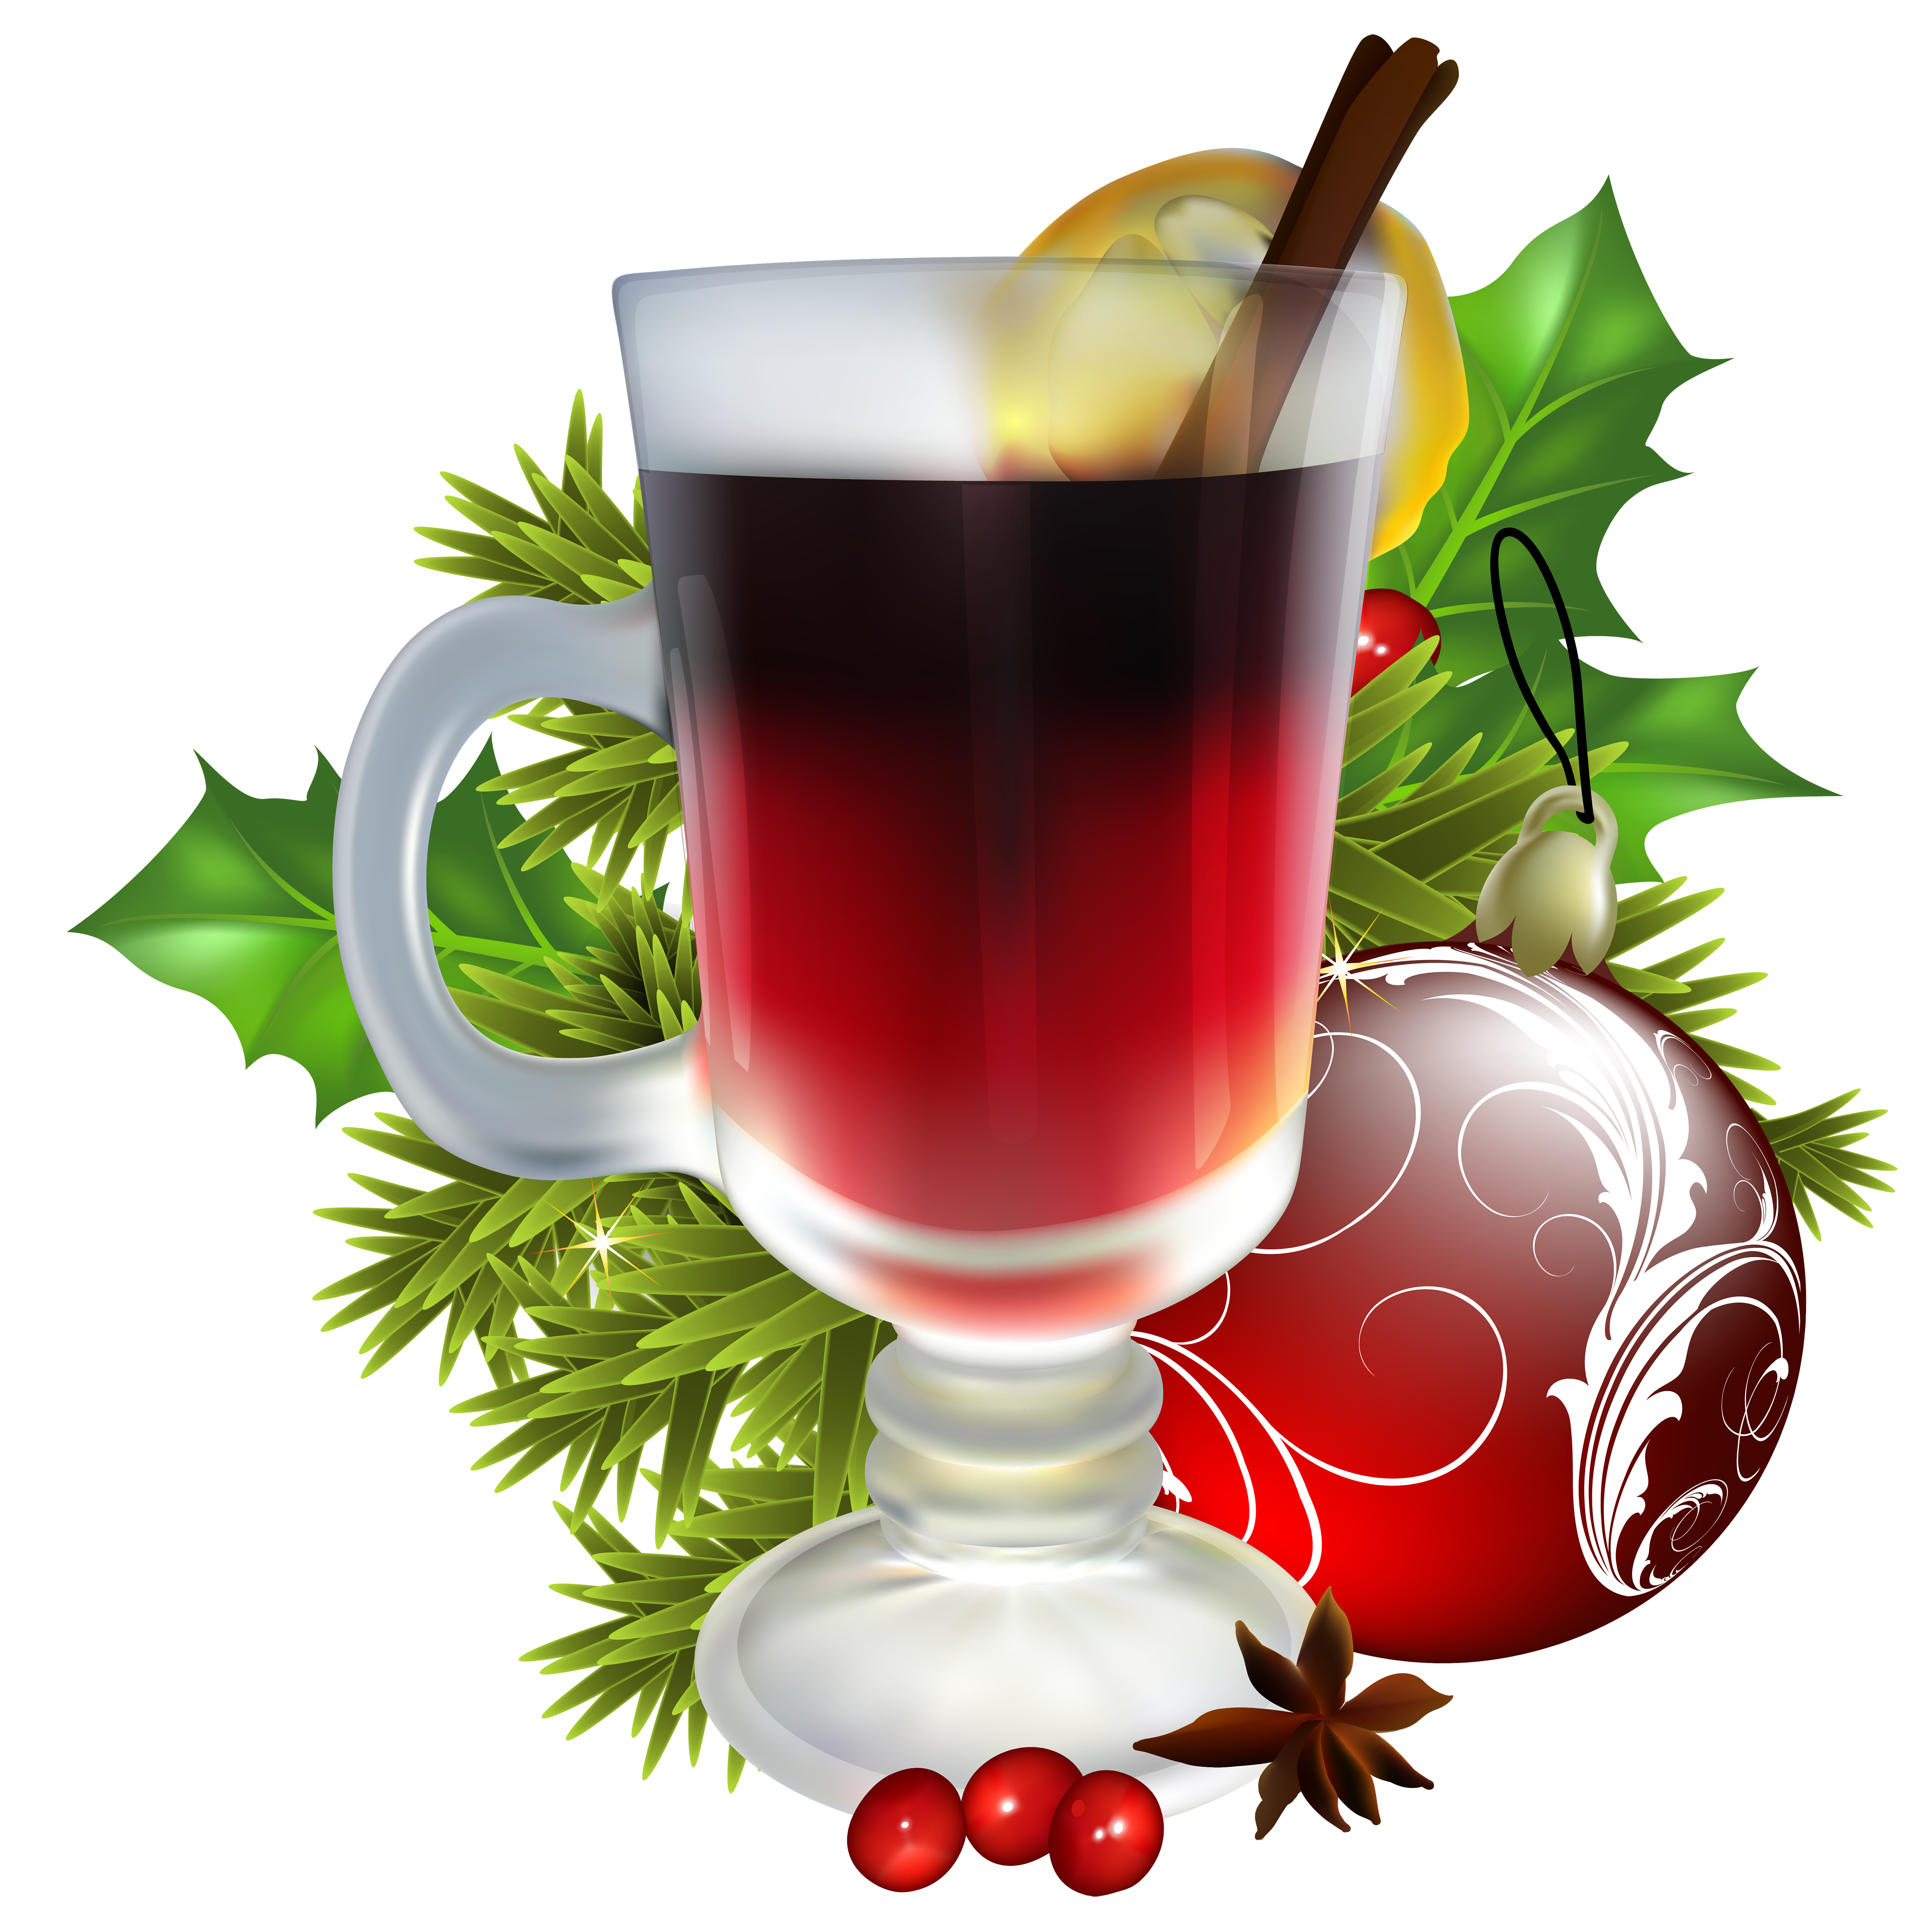 With decorations png image. Free christmas tea clipart